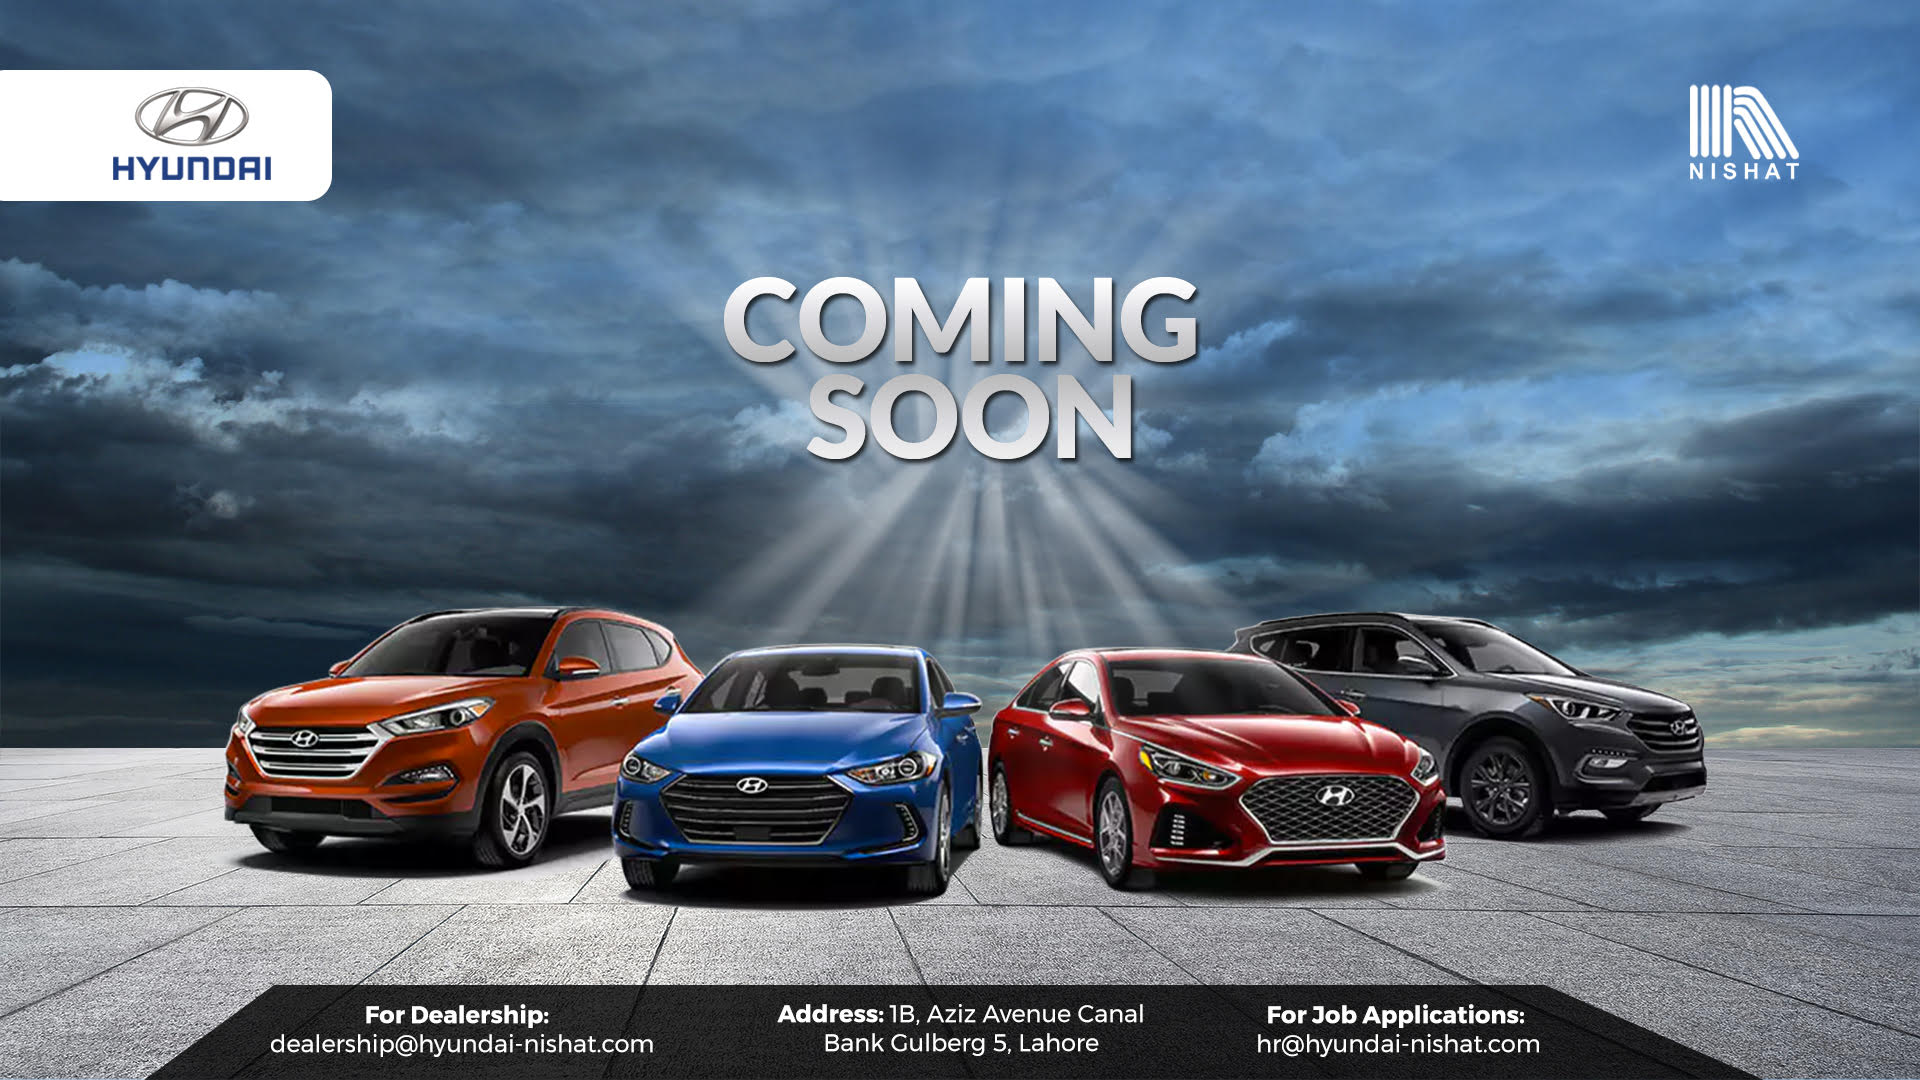 Hyundai-Nishat Website Hints a Range of Upcoming Vehicles 8